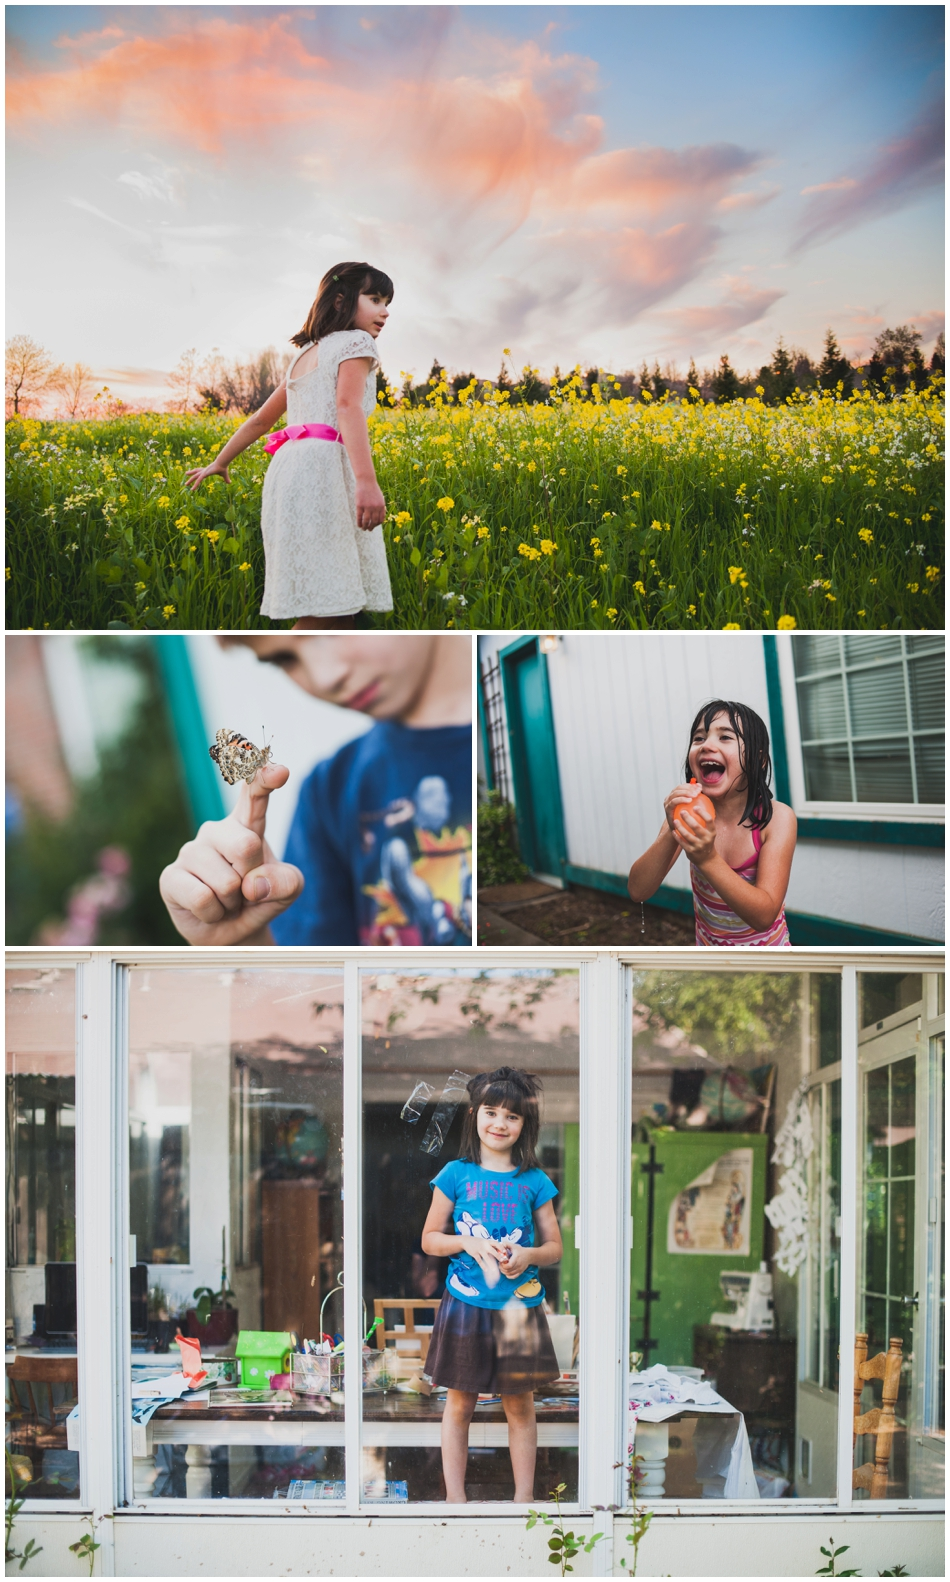 Amy Schuff - Sacramento Family Session at Home